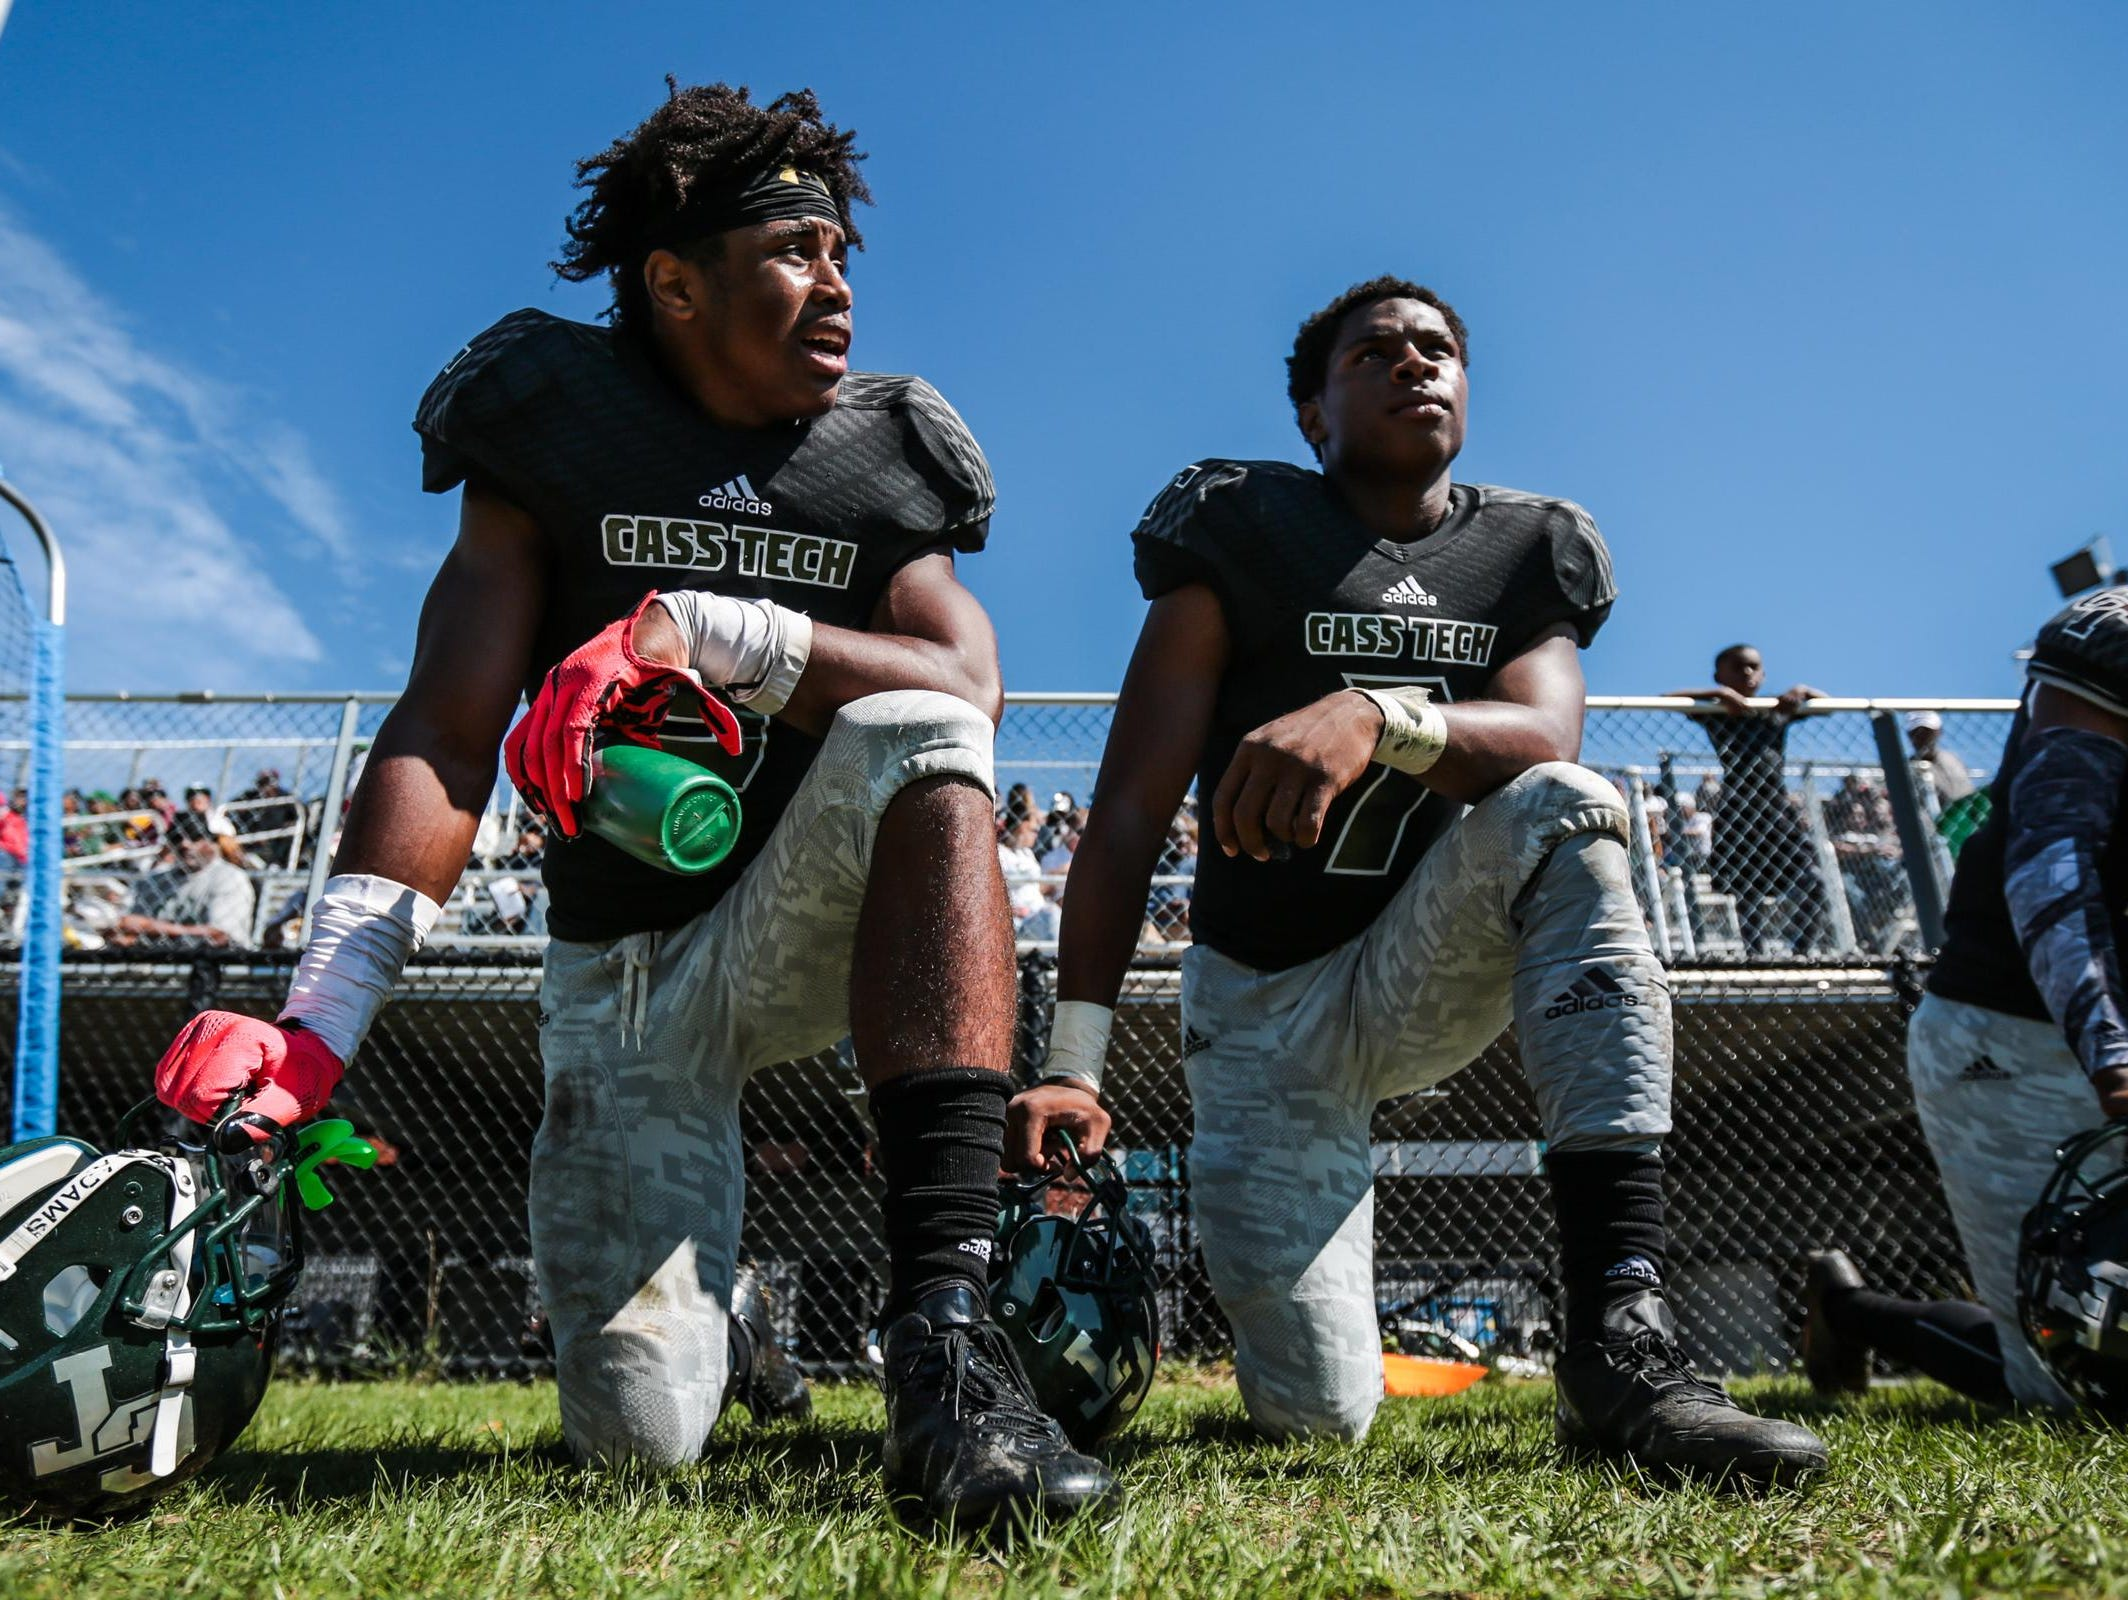 Detroit Cass Tech's Donovan Peoples-Jones, left, and Rodney Hall have played football with Donovan Johnson and Donovan Parker for 8 years. All are college recruits hoping to lead the Technicians to the state title.